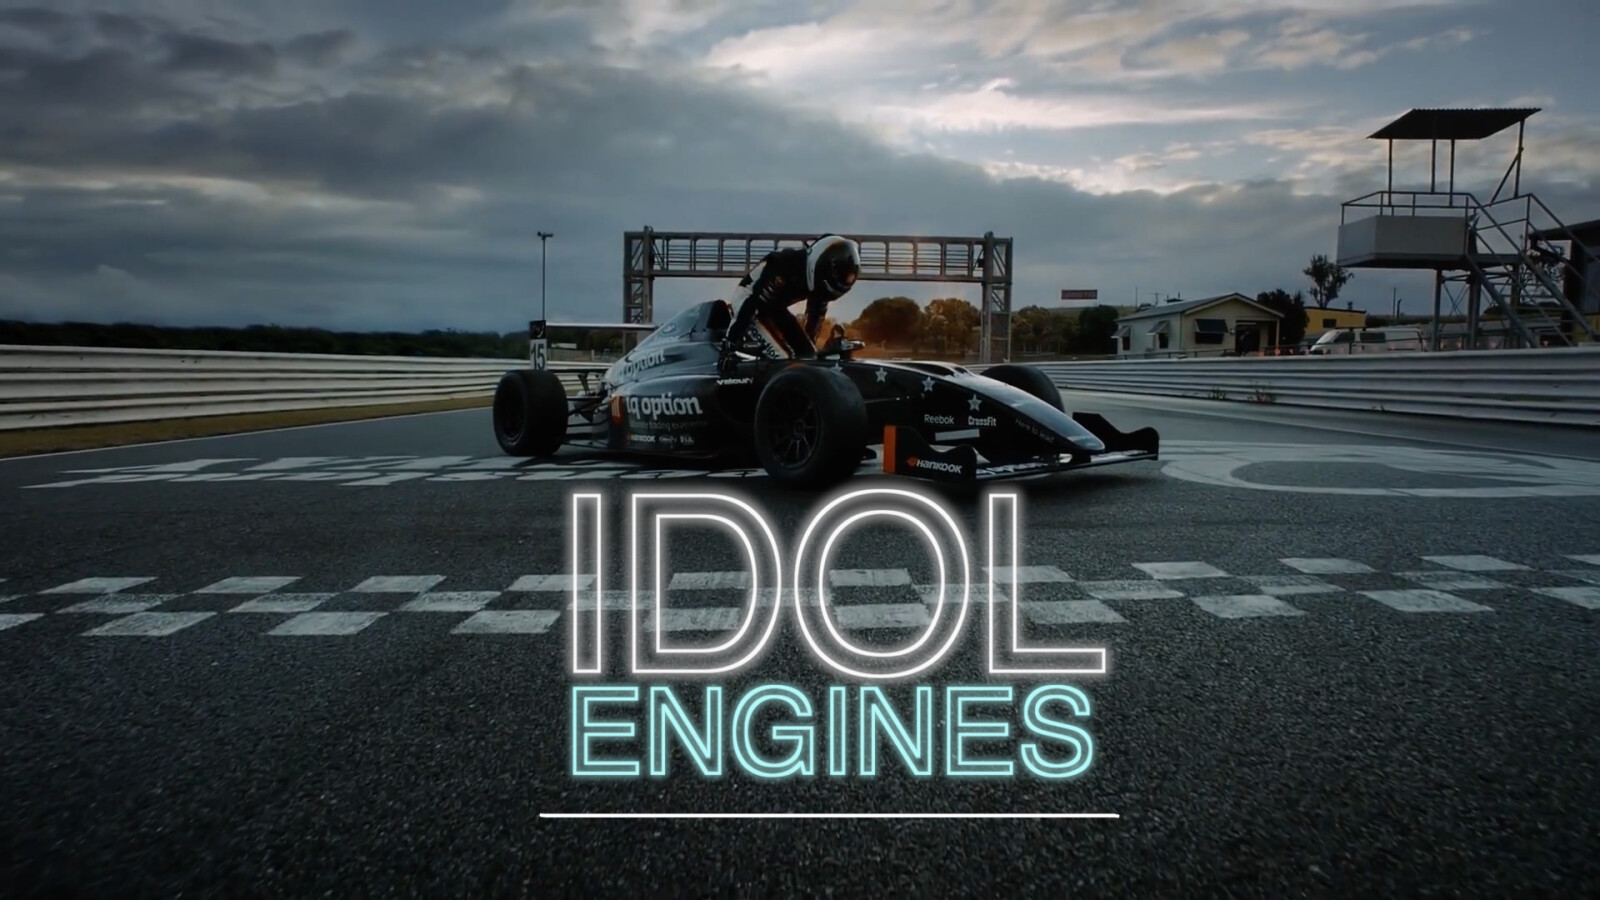 Idol Engines